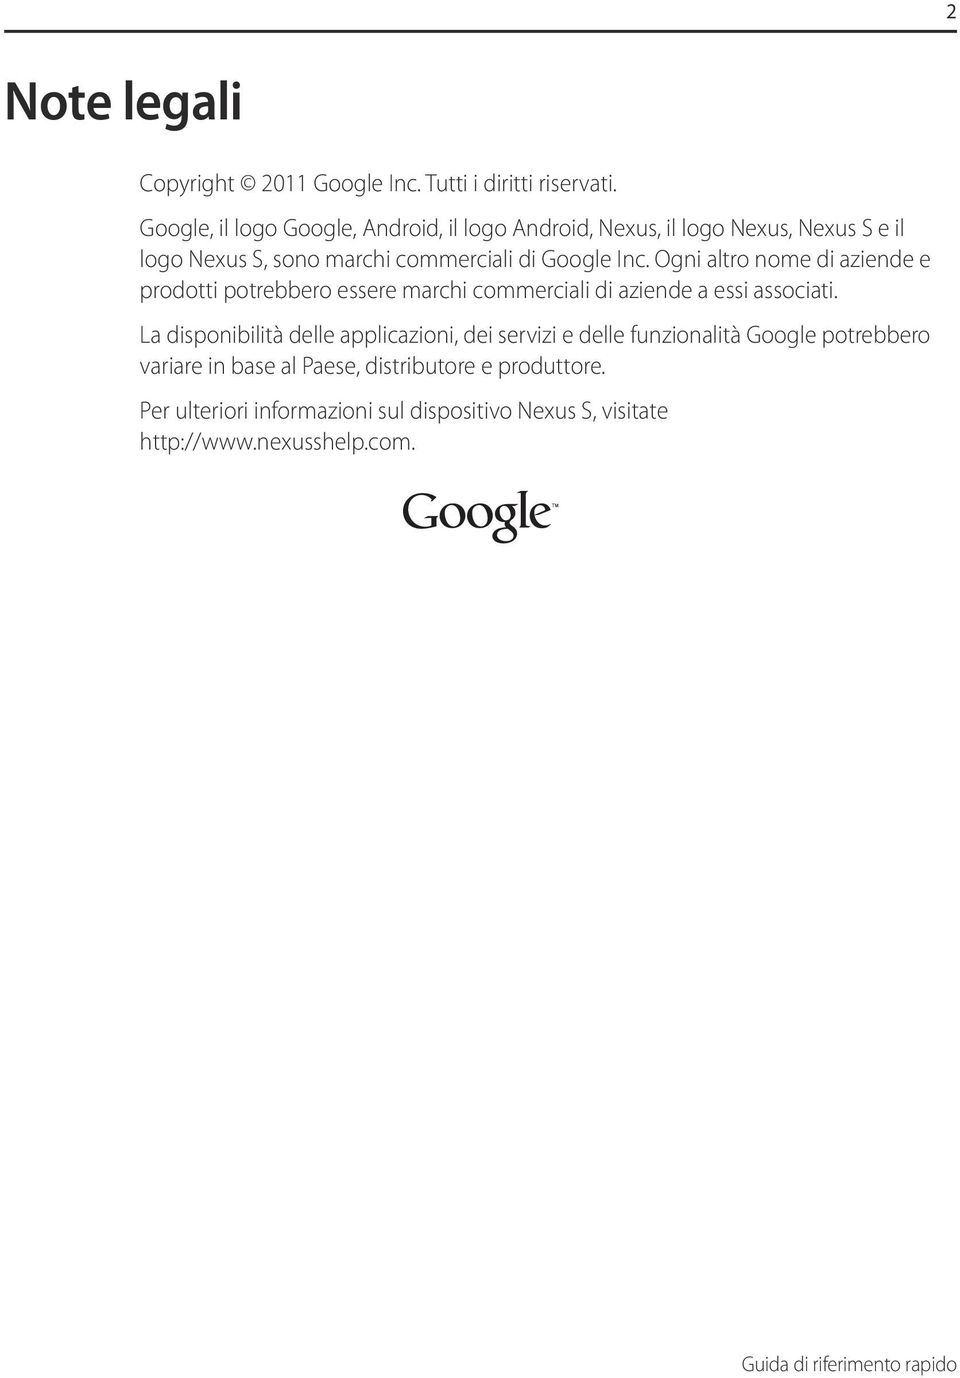 the stylized Nexus S logo, are trademarks of Google logo Nexus S, sono marchi commerciali di Google Inc. Ogni altro nome di aziende e Inc.